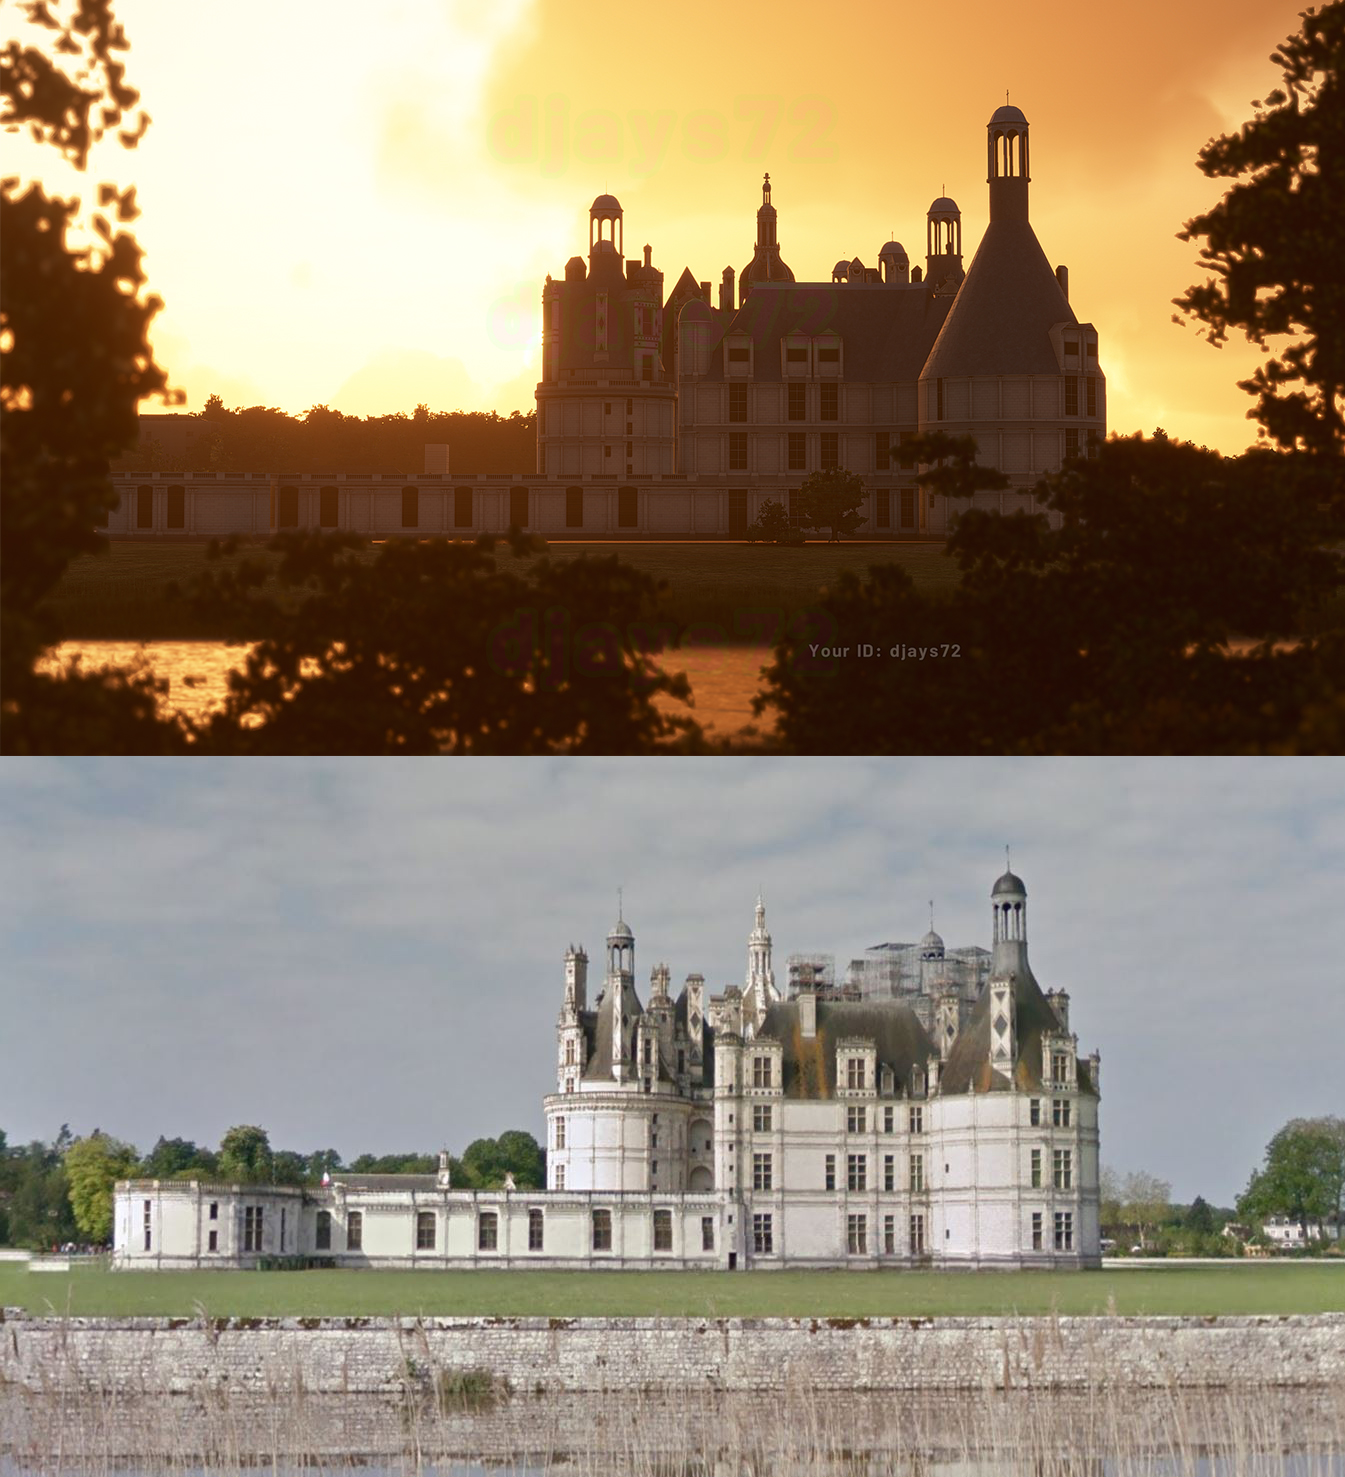 Flight Simulator chateau de chambord